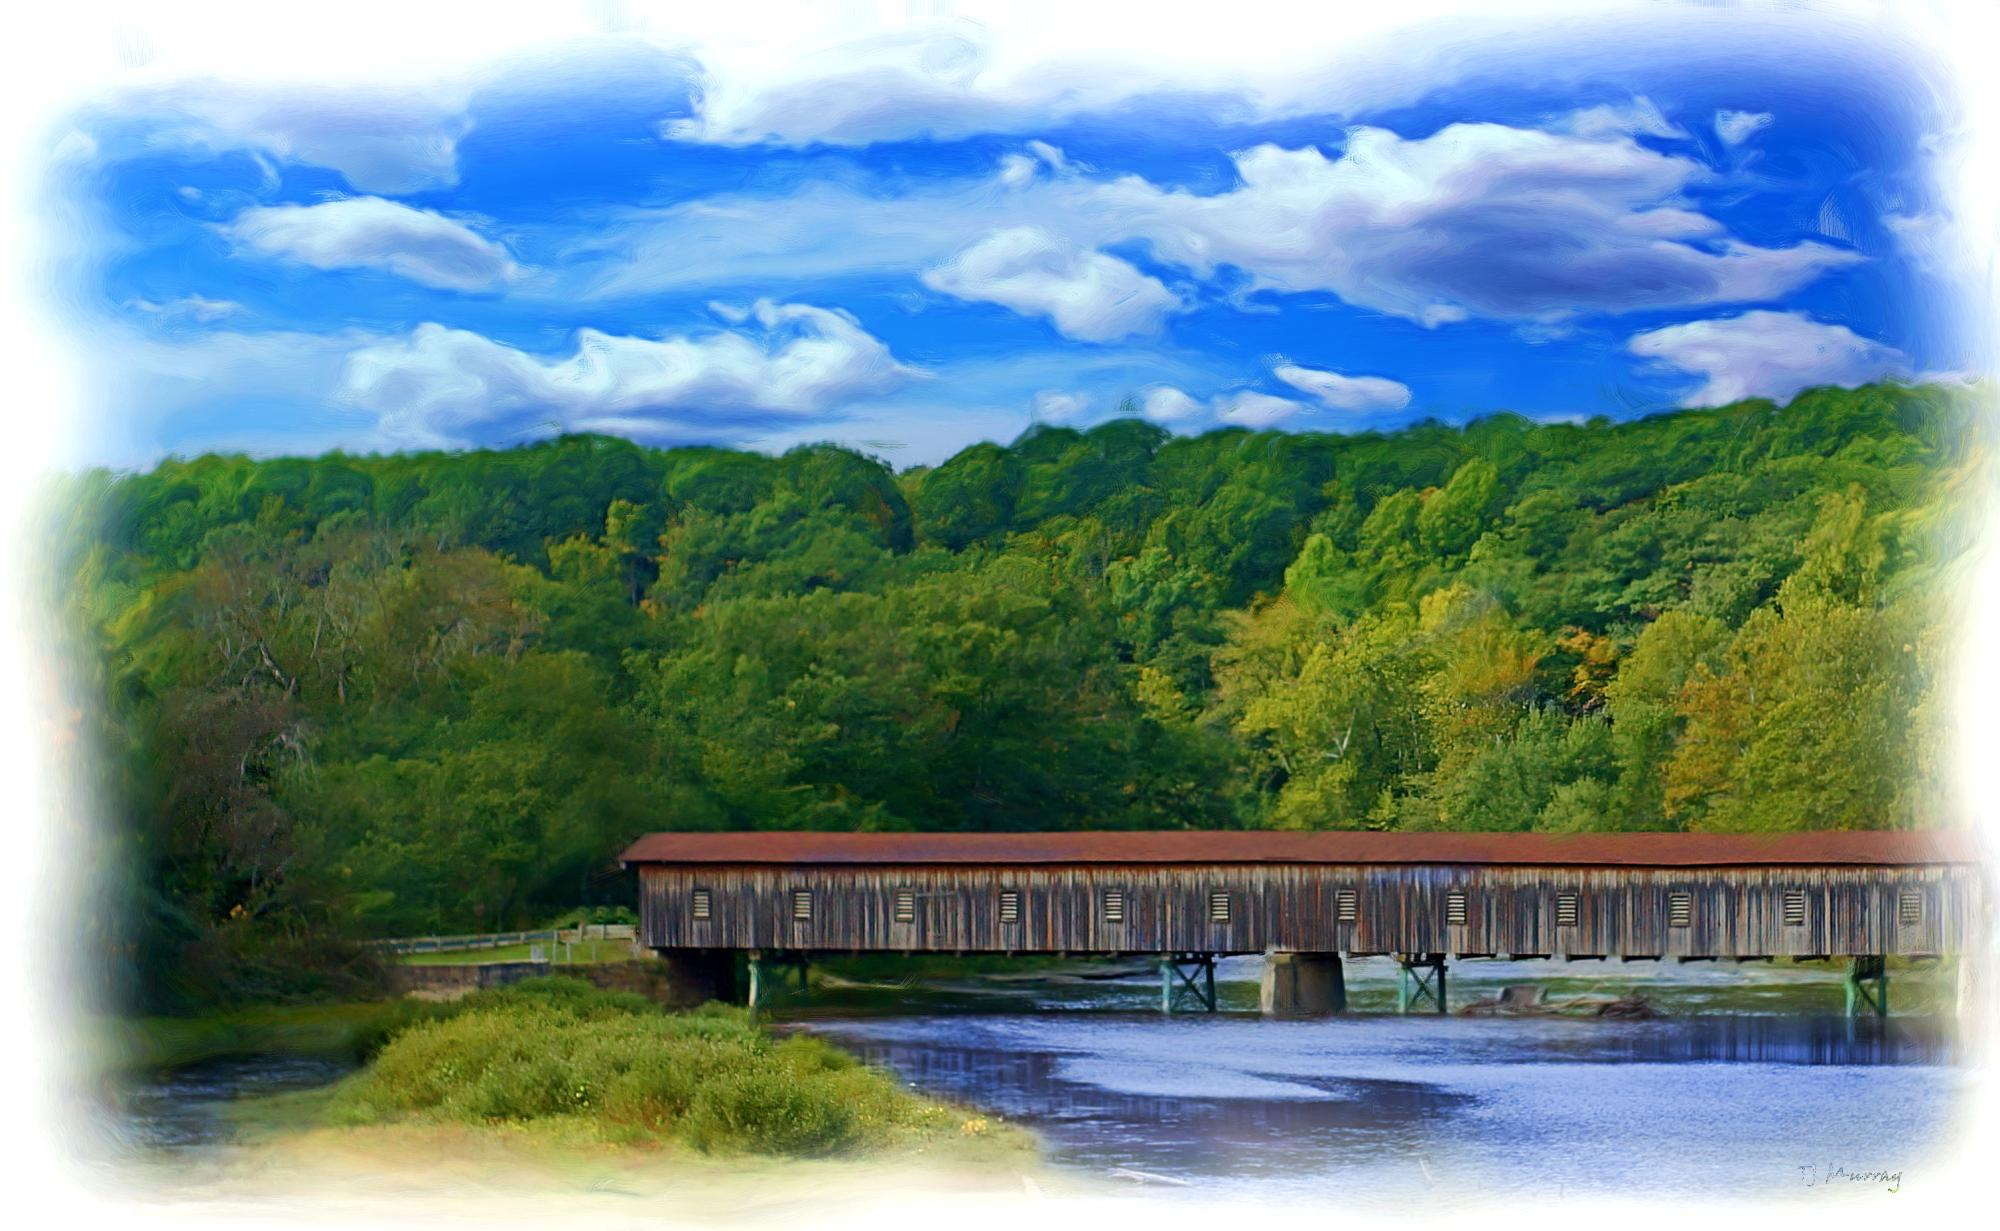 Covered_Bridge29987.jpg